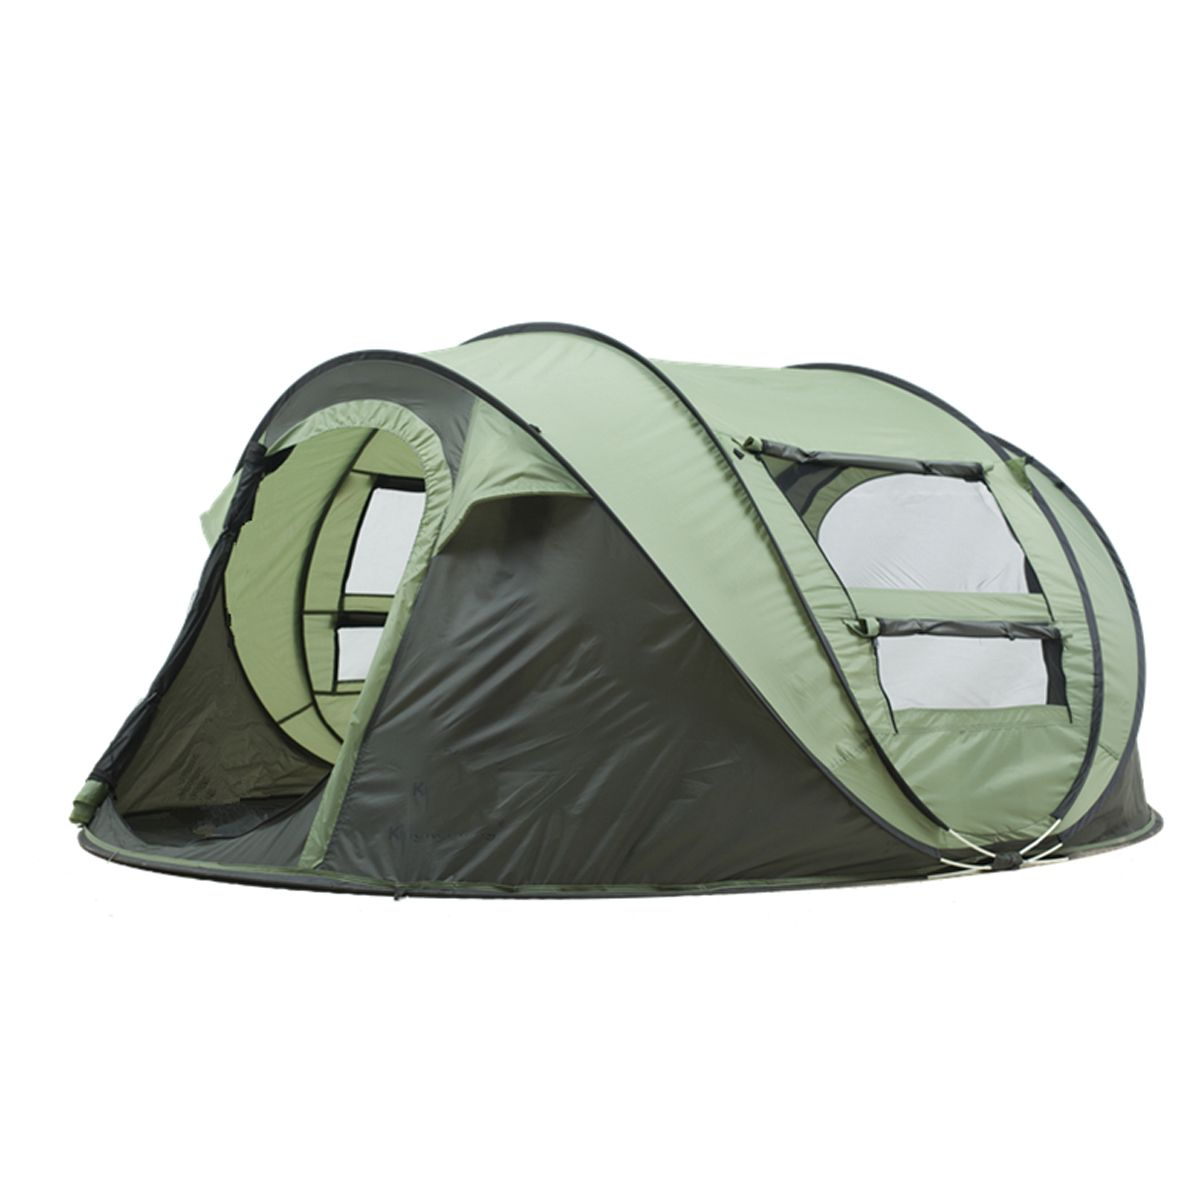 IPRee™ Persons Automatic Pop Up Tent Waterproof Windproof C&ing Sunshade Canopy  sc 1 st  Pinterest : pop up tent accessories - memphite.com